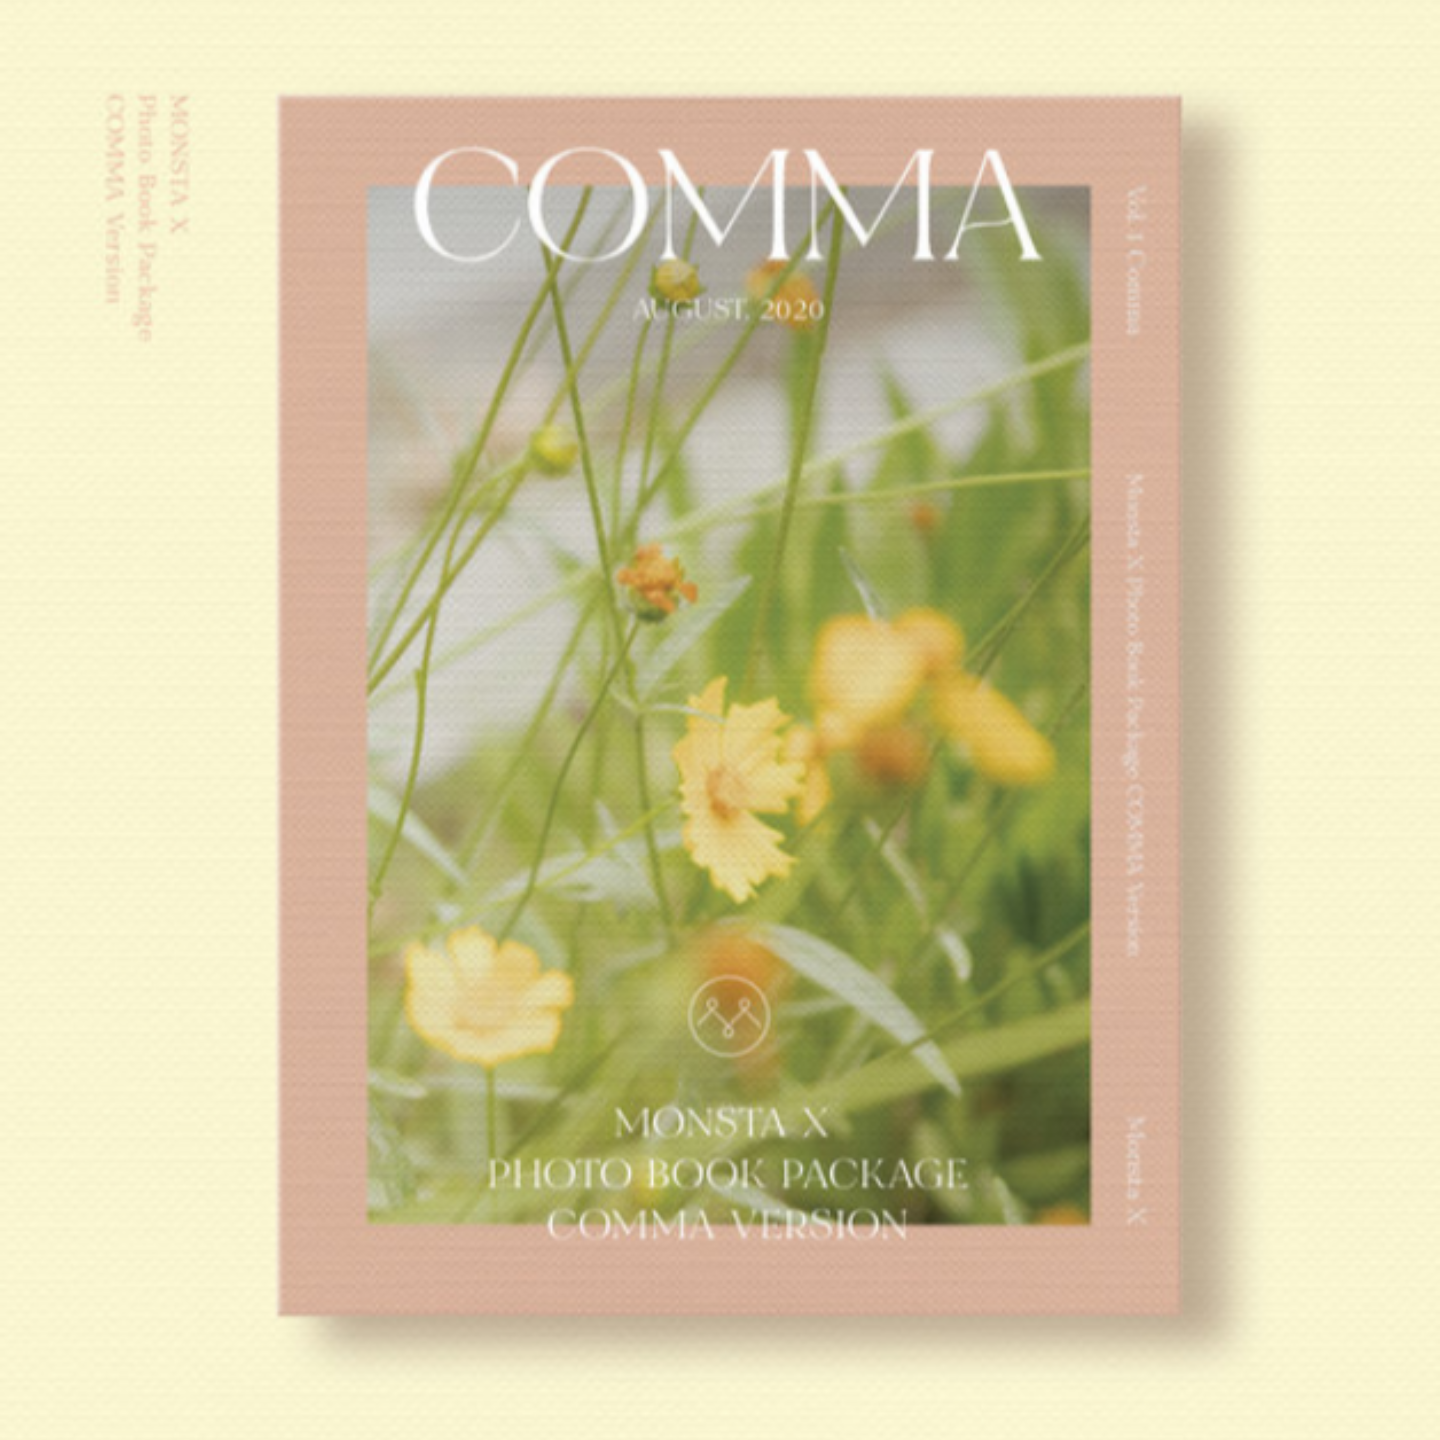 MONSTA X 2020 PHOTO BOOK : COMMA